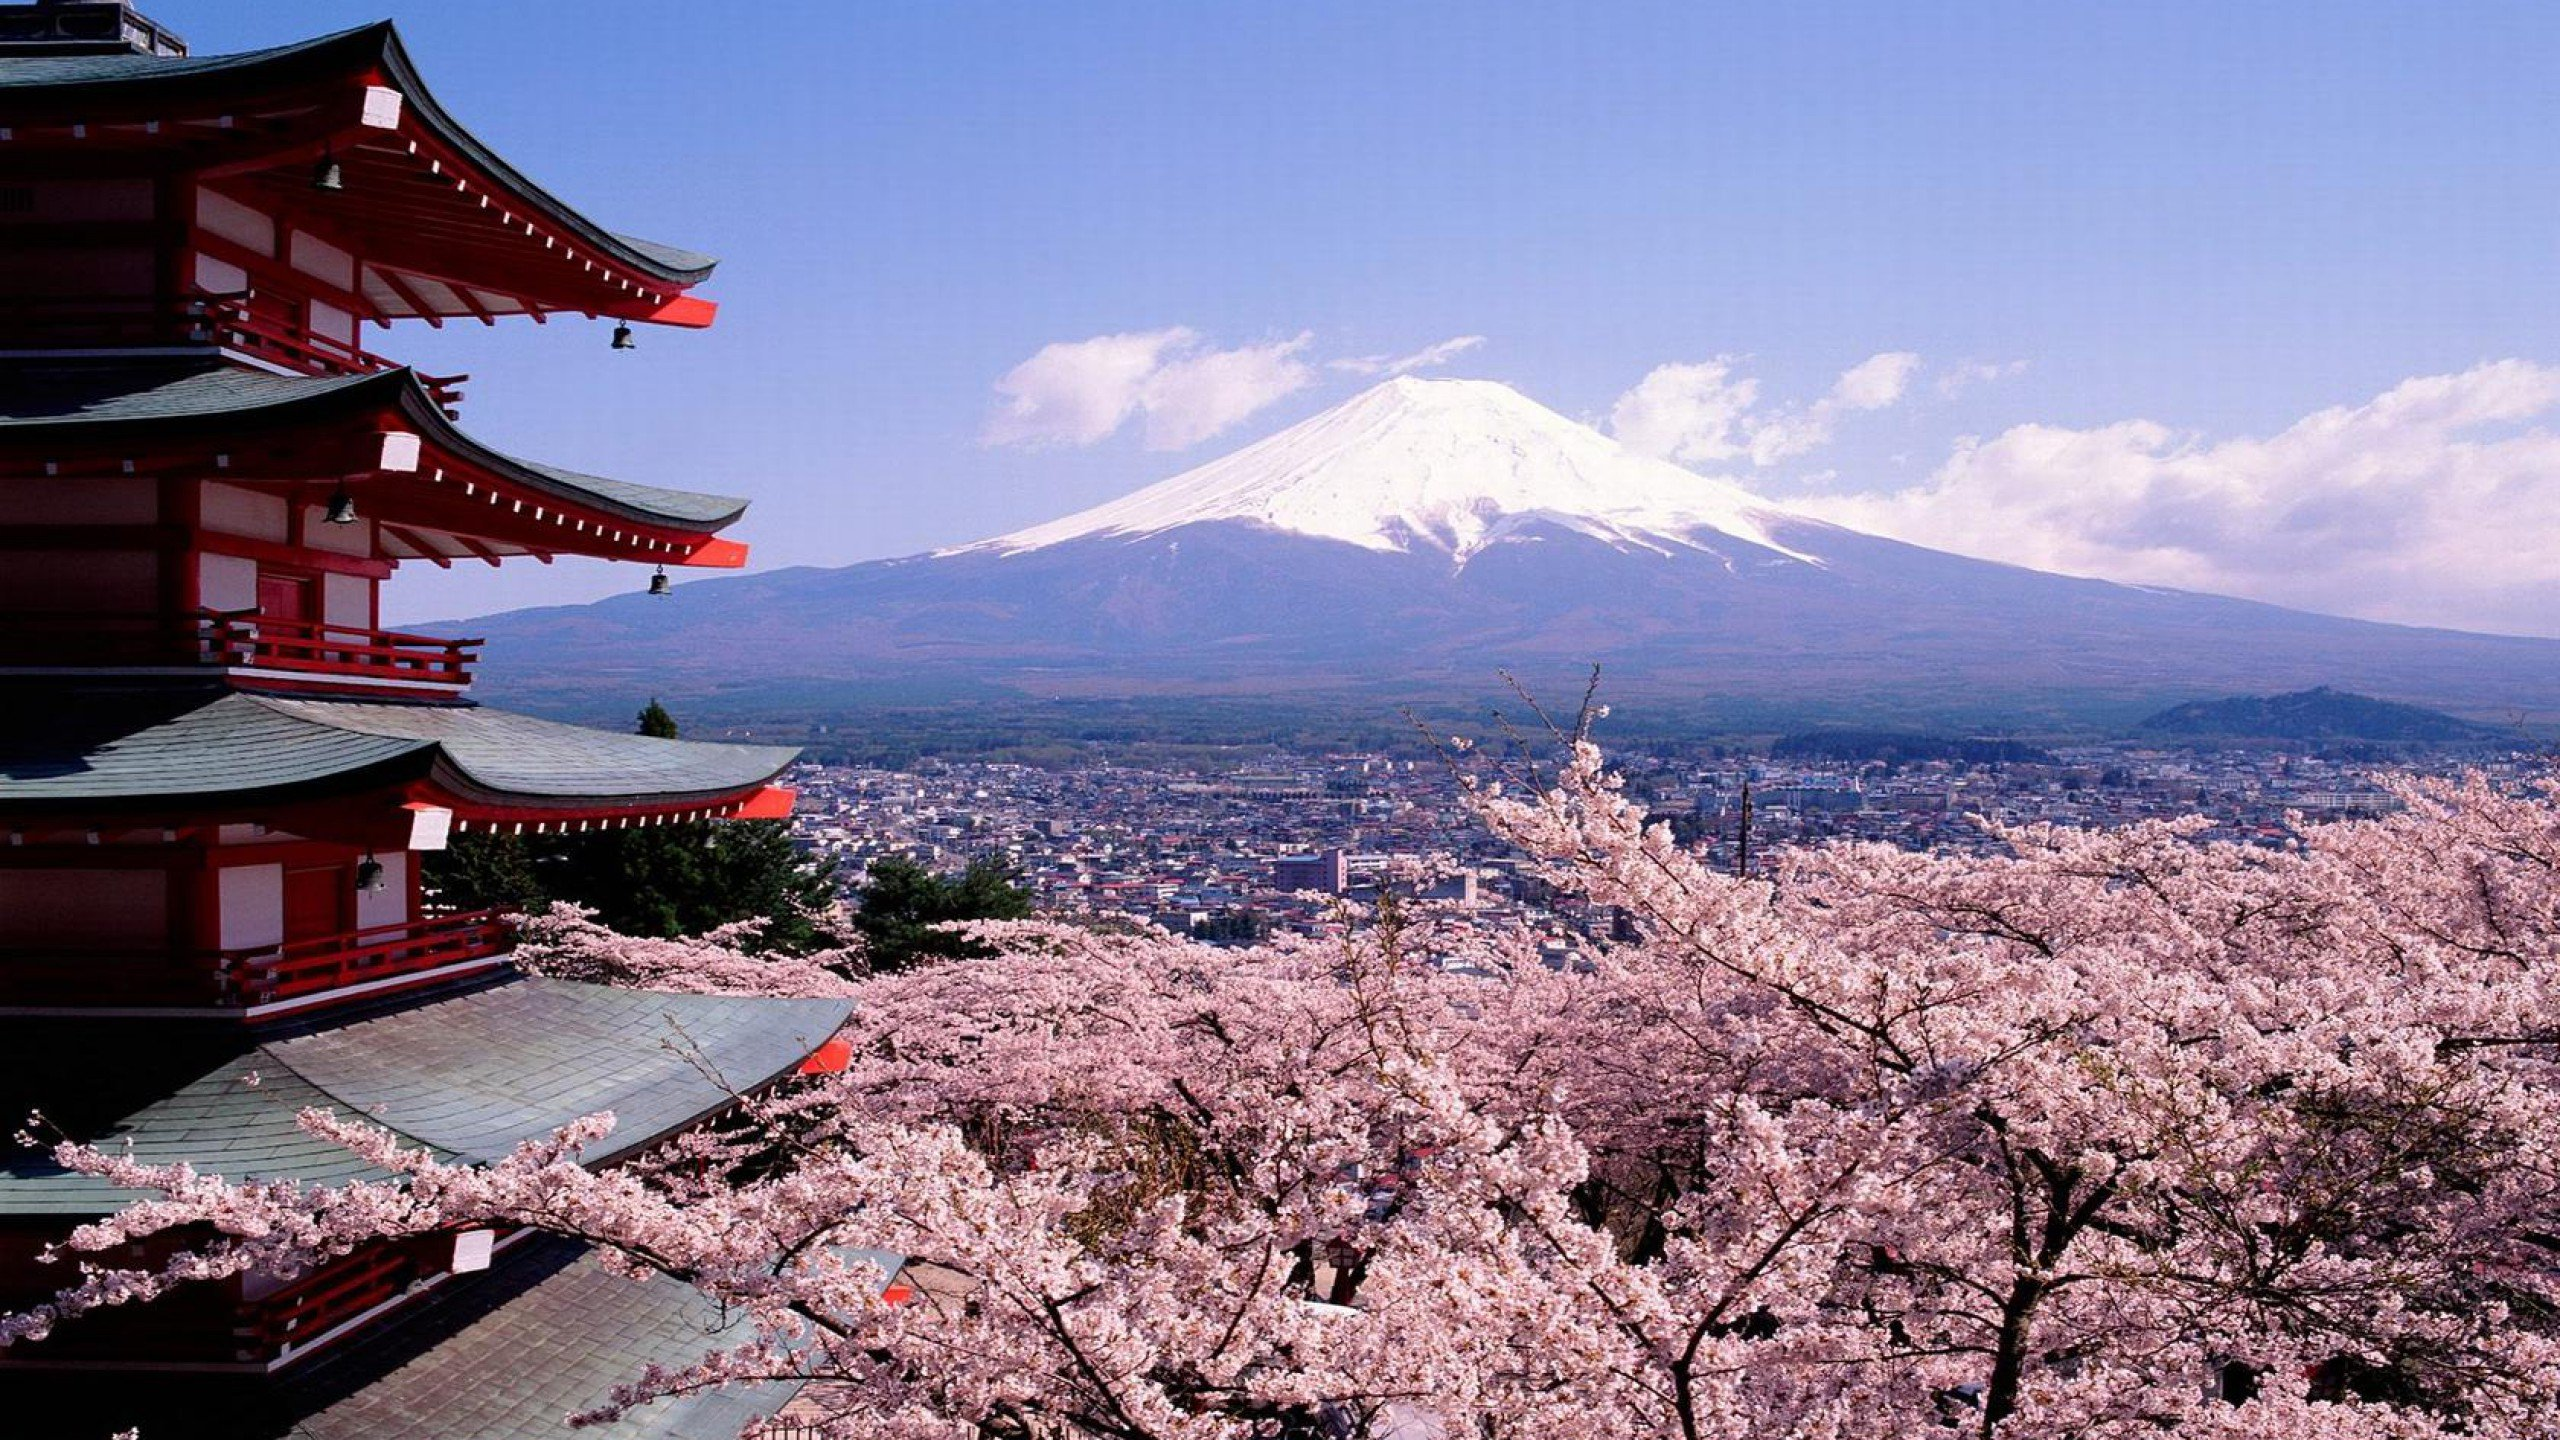 Mount Fuji Japan Wallpaper   Travel HD Wallpapers 2560x1440